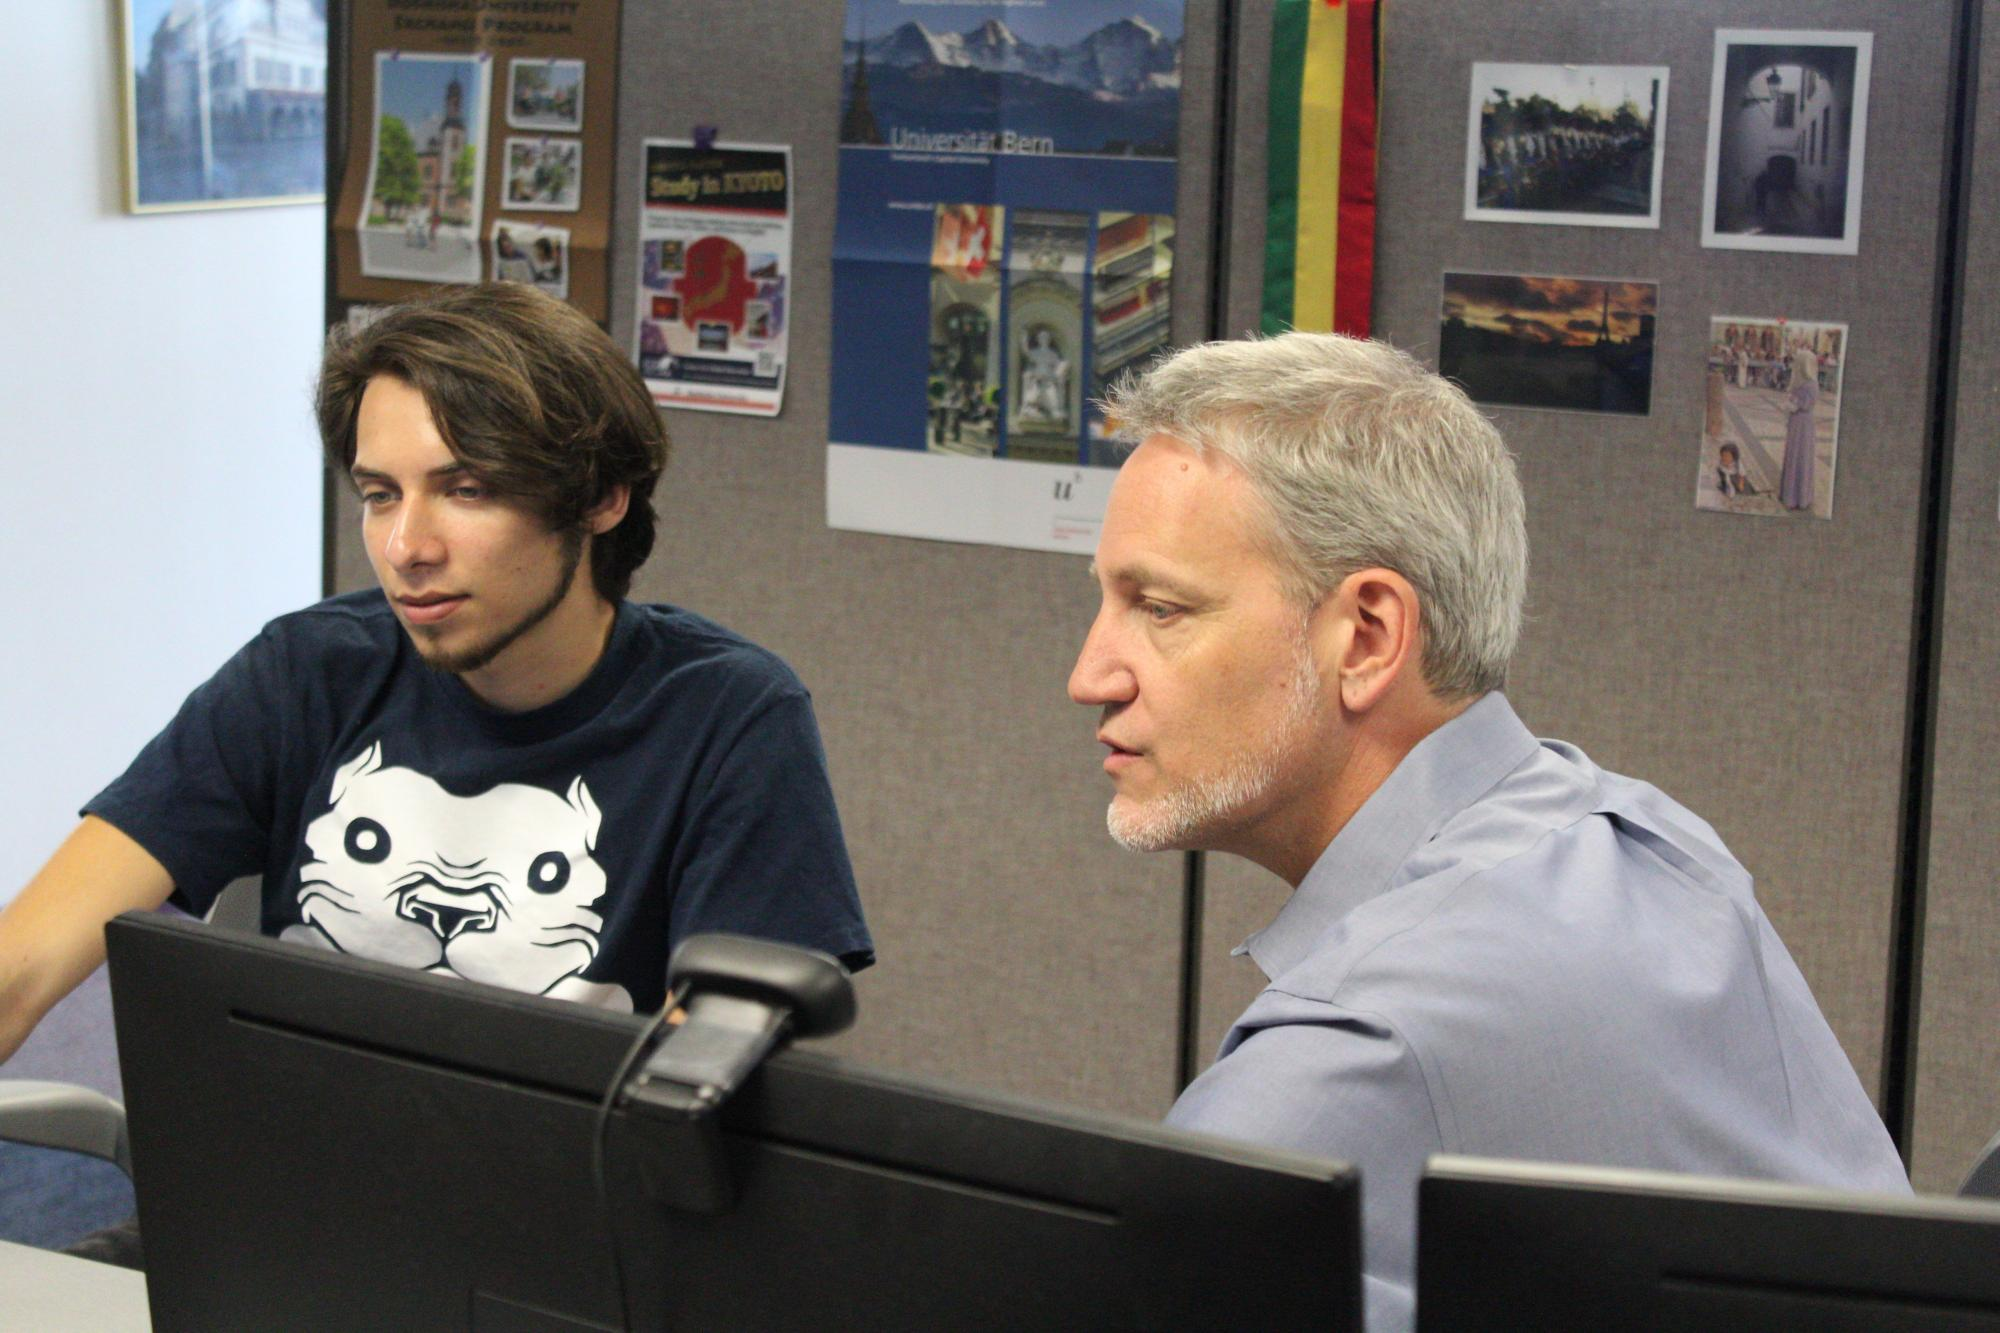 Ash Black  helps Tech.Global developer Alan Salguero with some coding. Salguero is working at Tech.Global this summer while visiting from the Instituto Tecnológico de Sonora in Mexico.